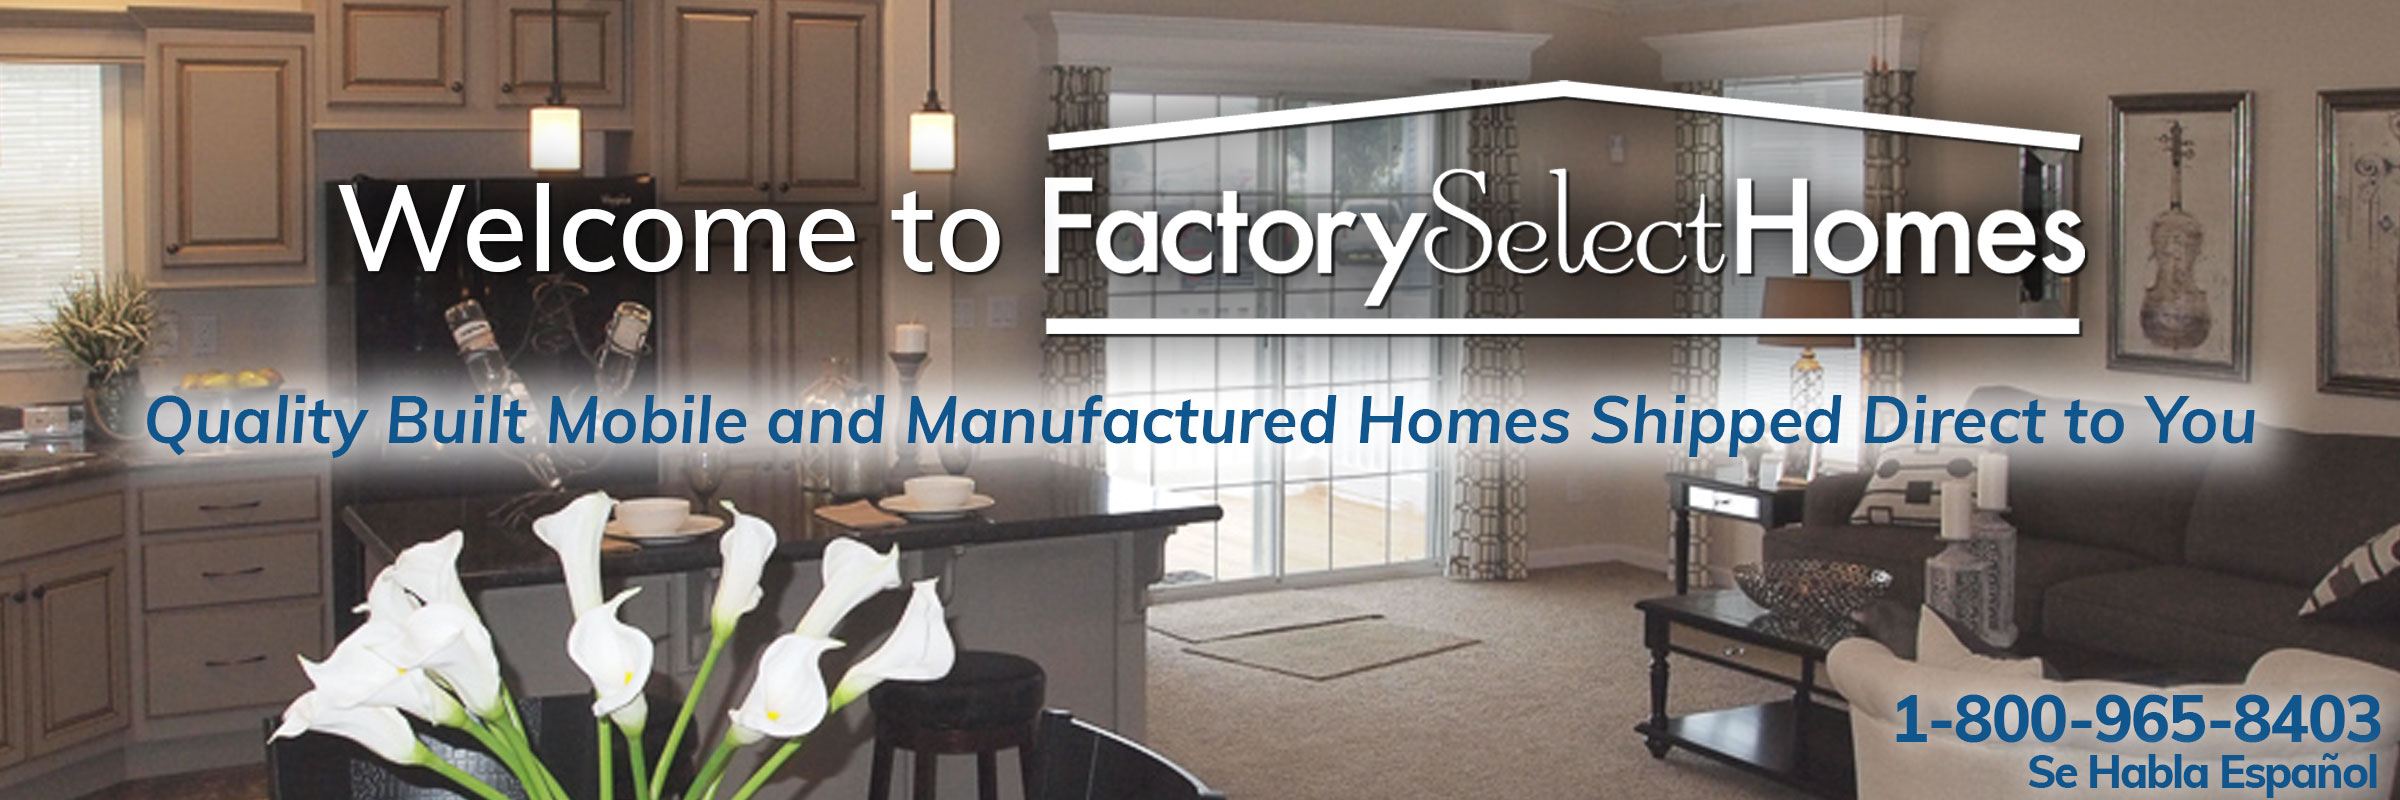 Factory Select Homes - New Mobile Homes For Sale